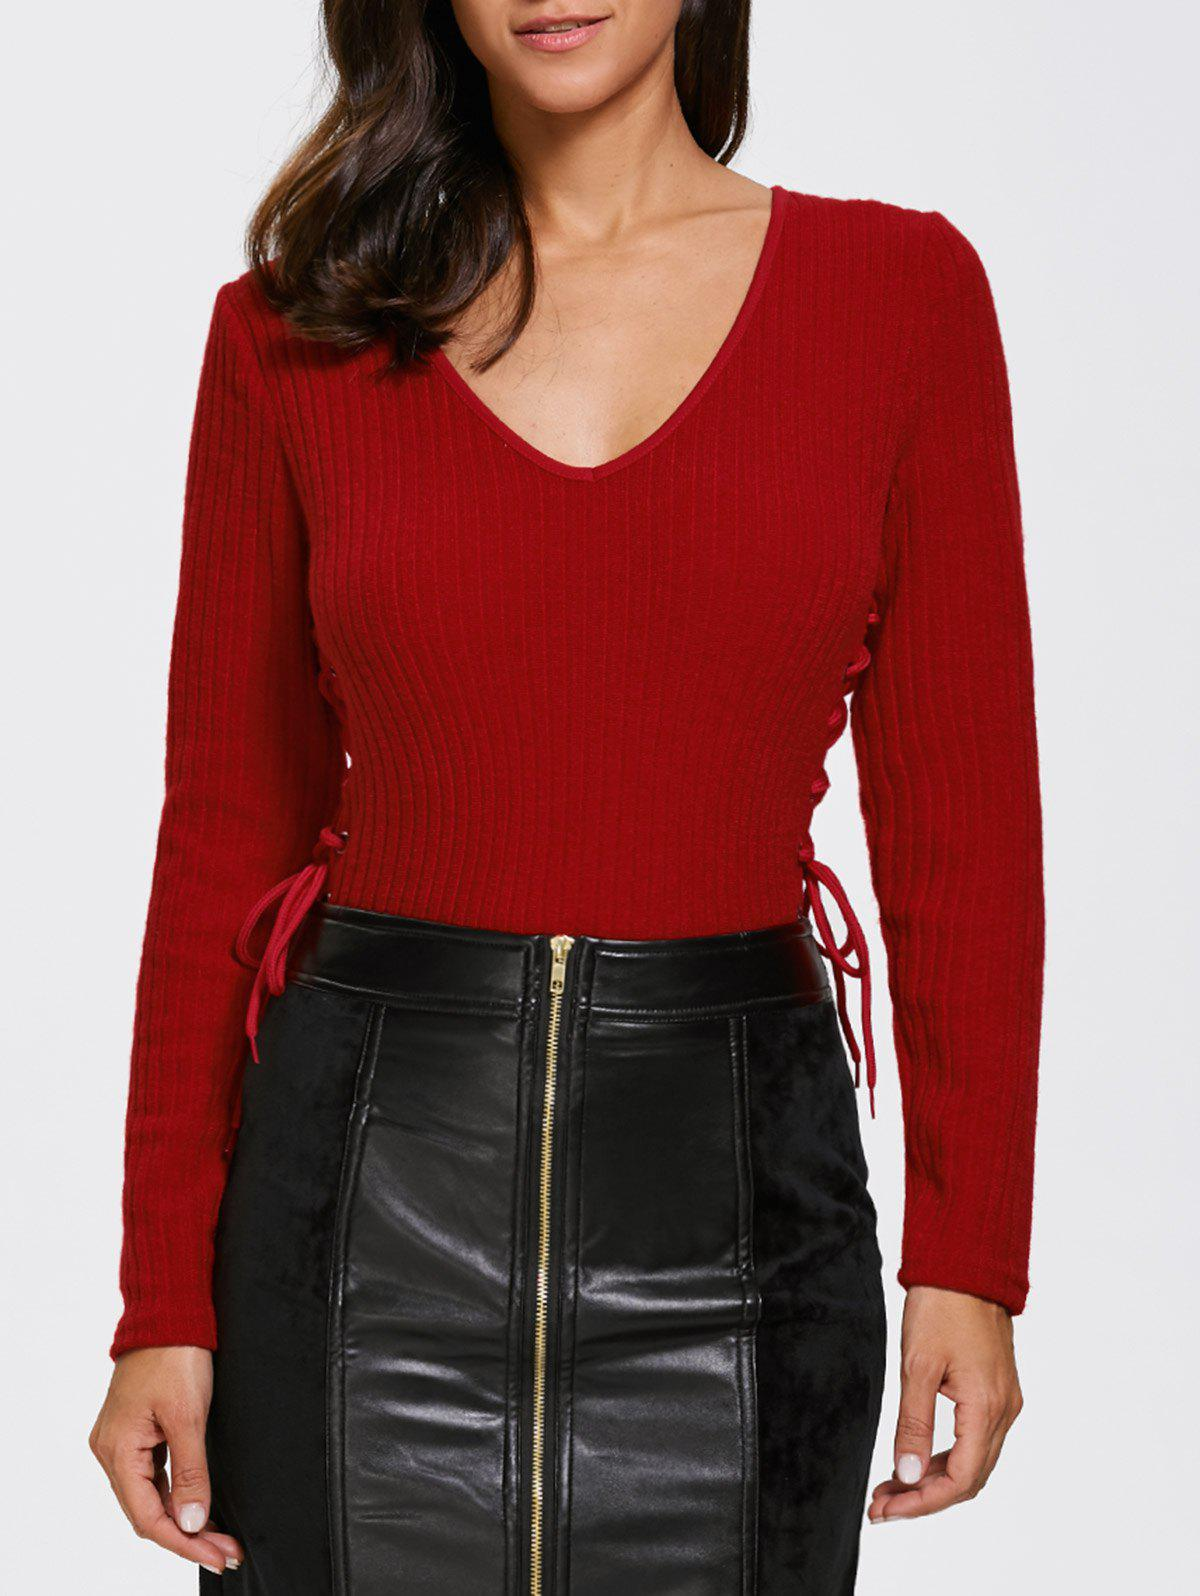 Knitted Lace Up BodysuitWomen<br><br><br>Size: XL<br>Color: DEEP RED